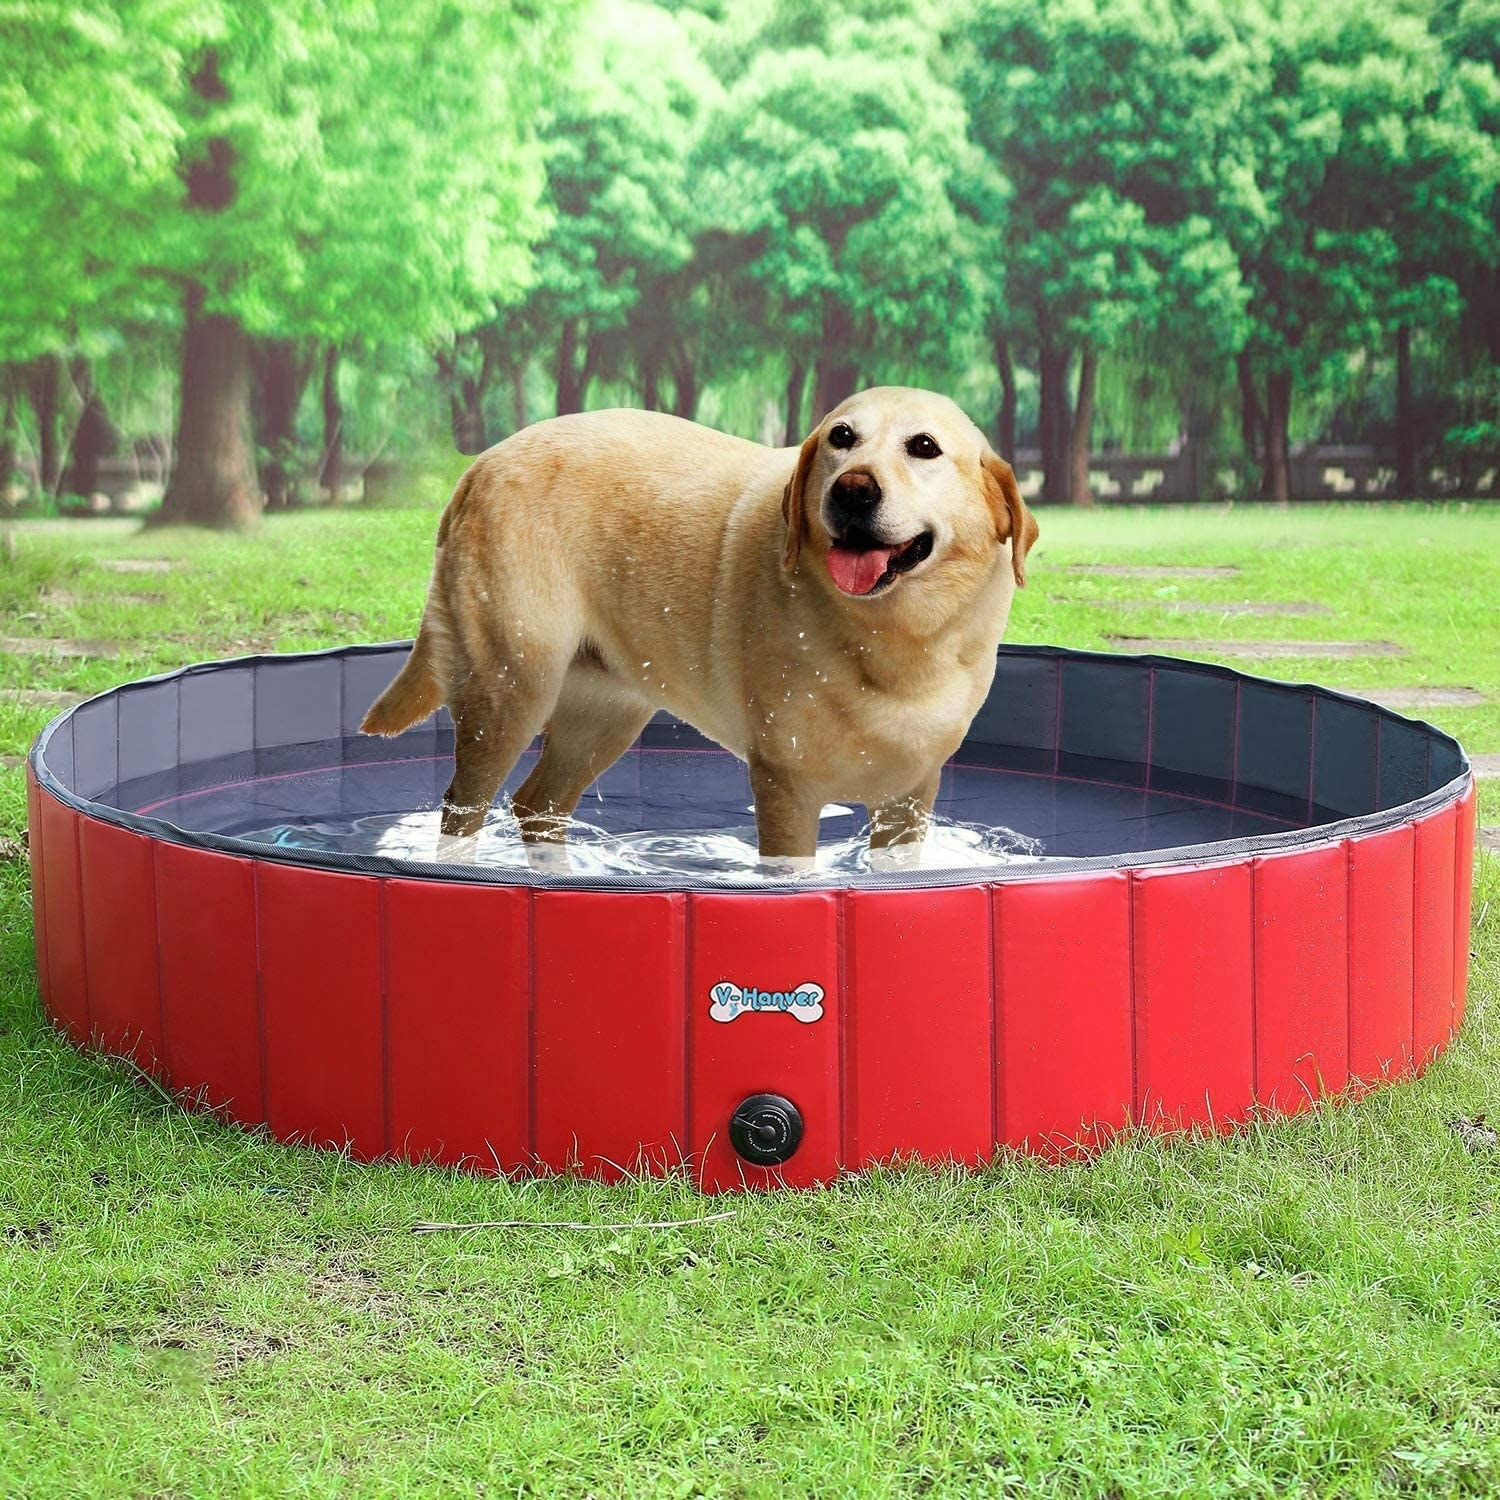 A photoshopped image of a dog in the pool